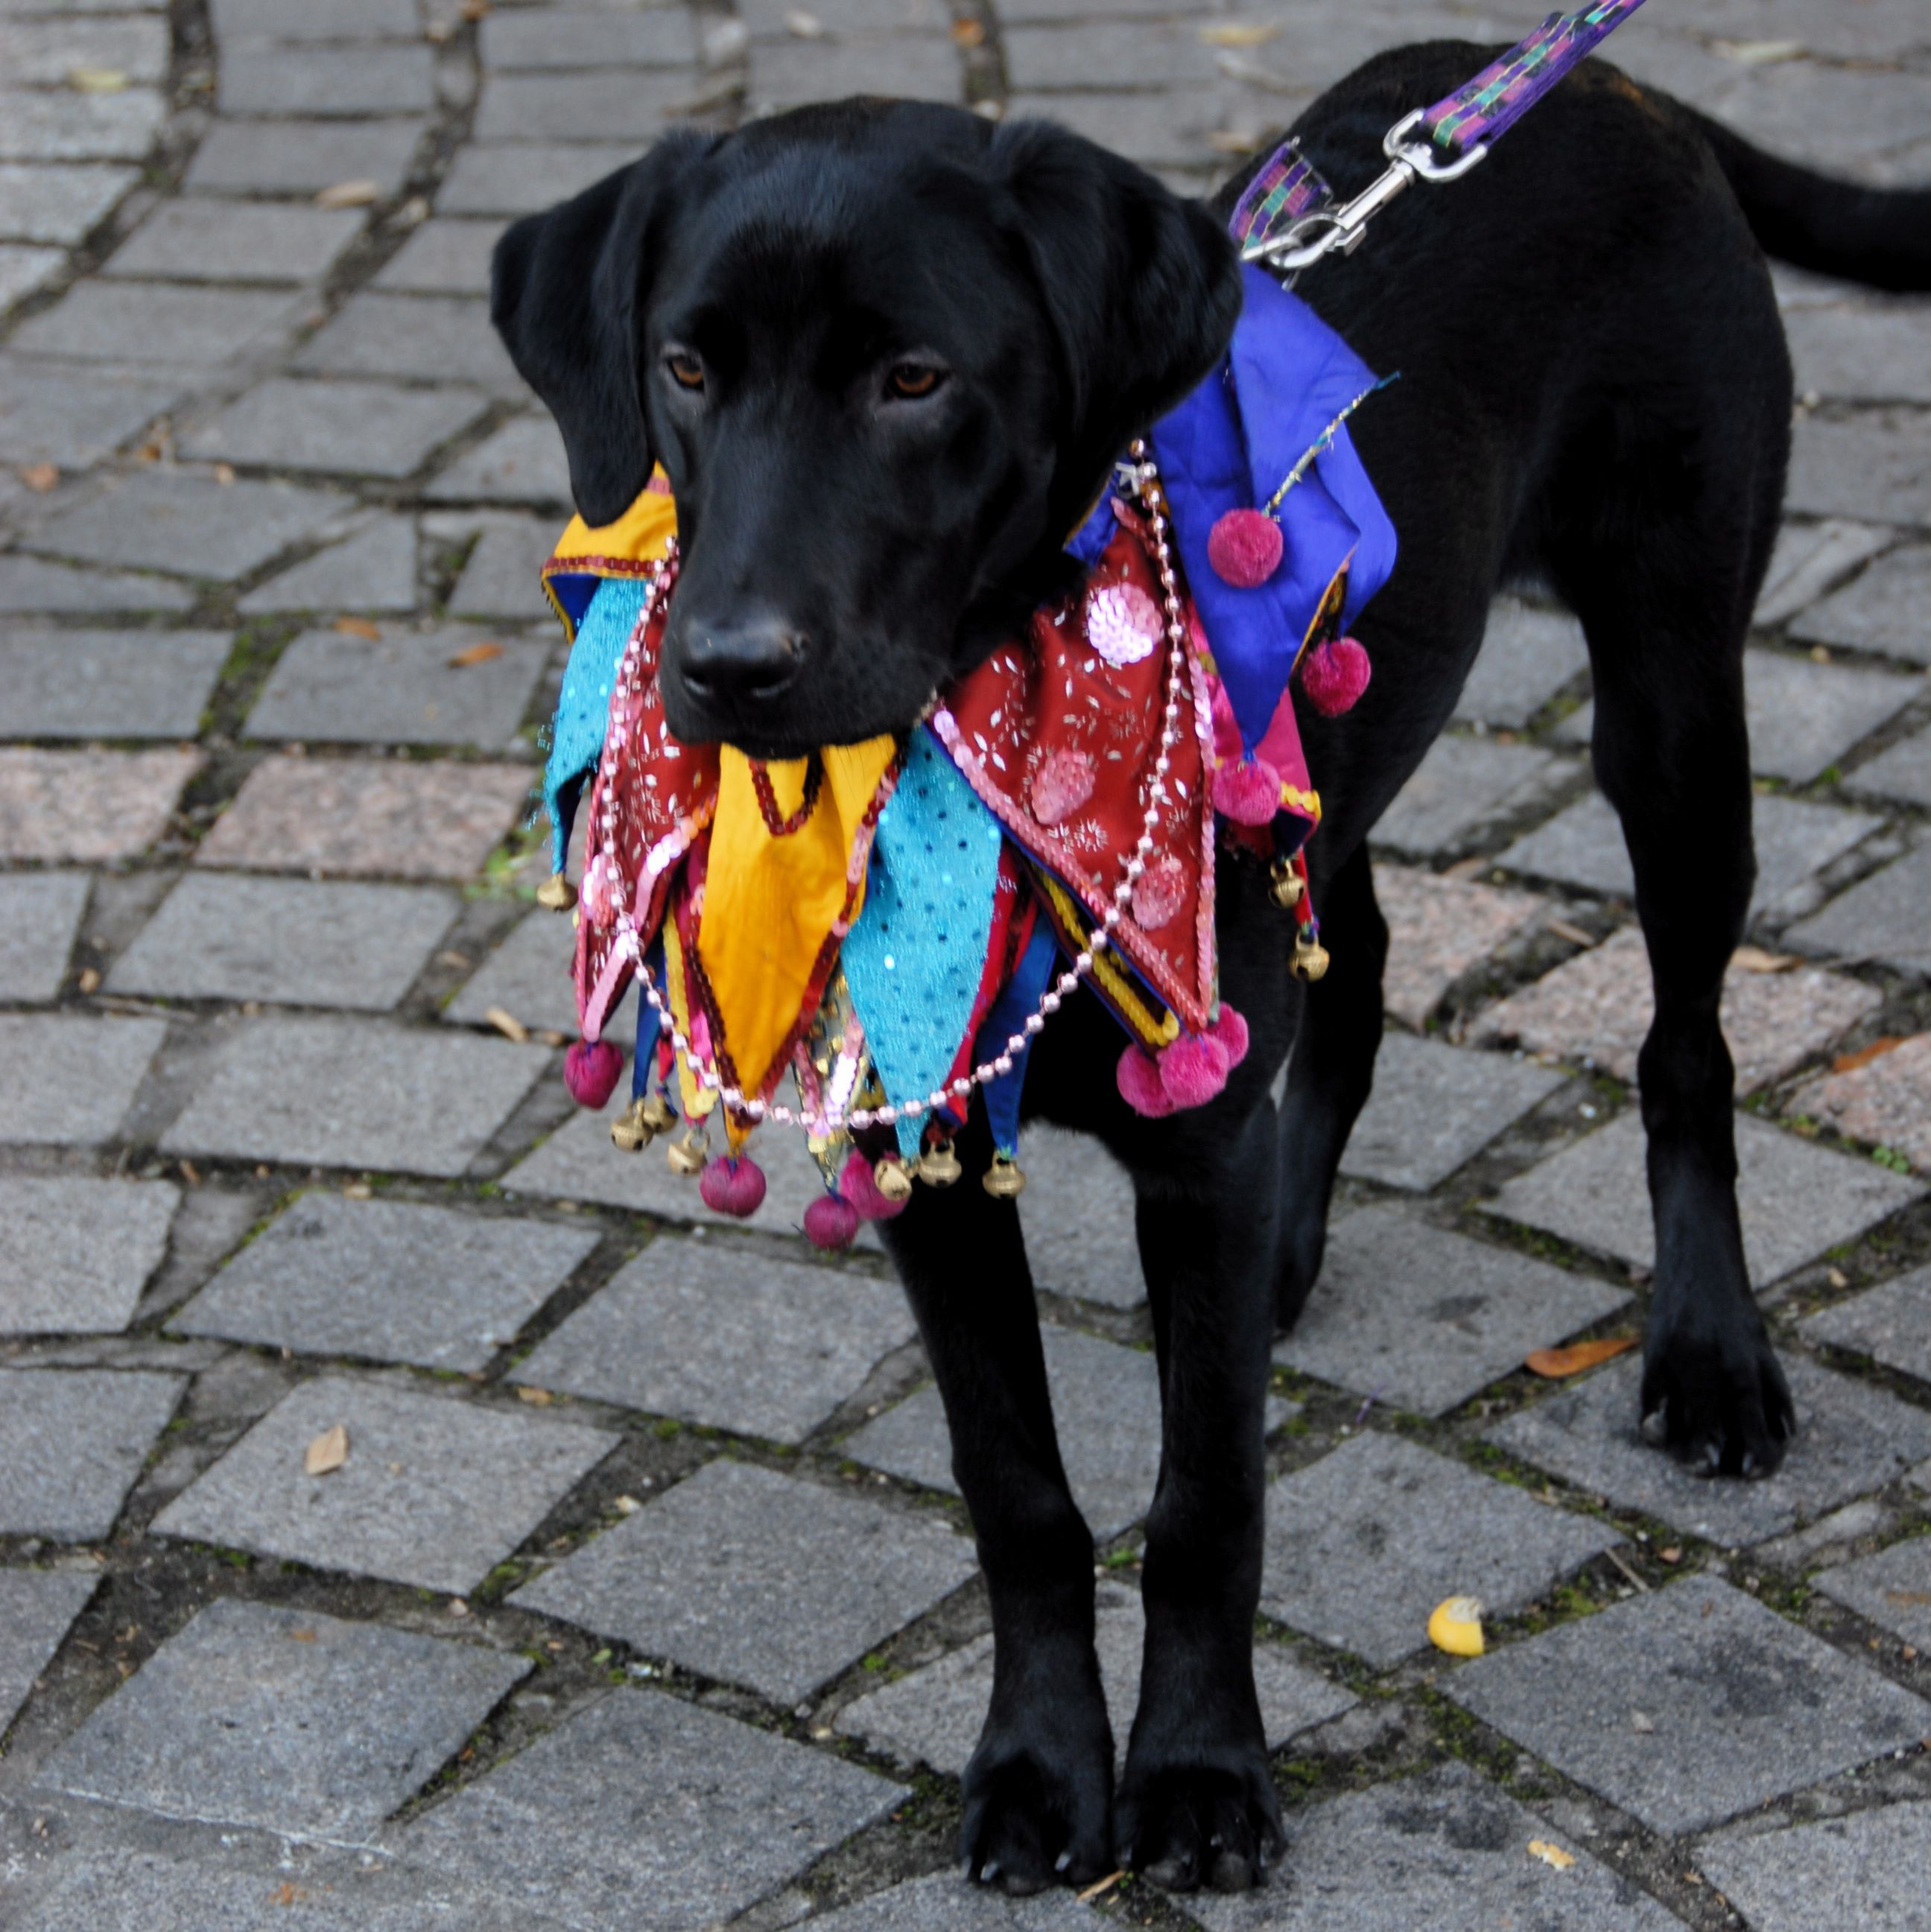 Her First Barkus Mardi Gras Dog Parade In New Orleans A Few Years